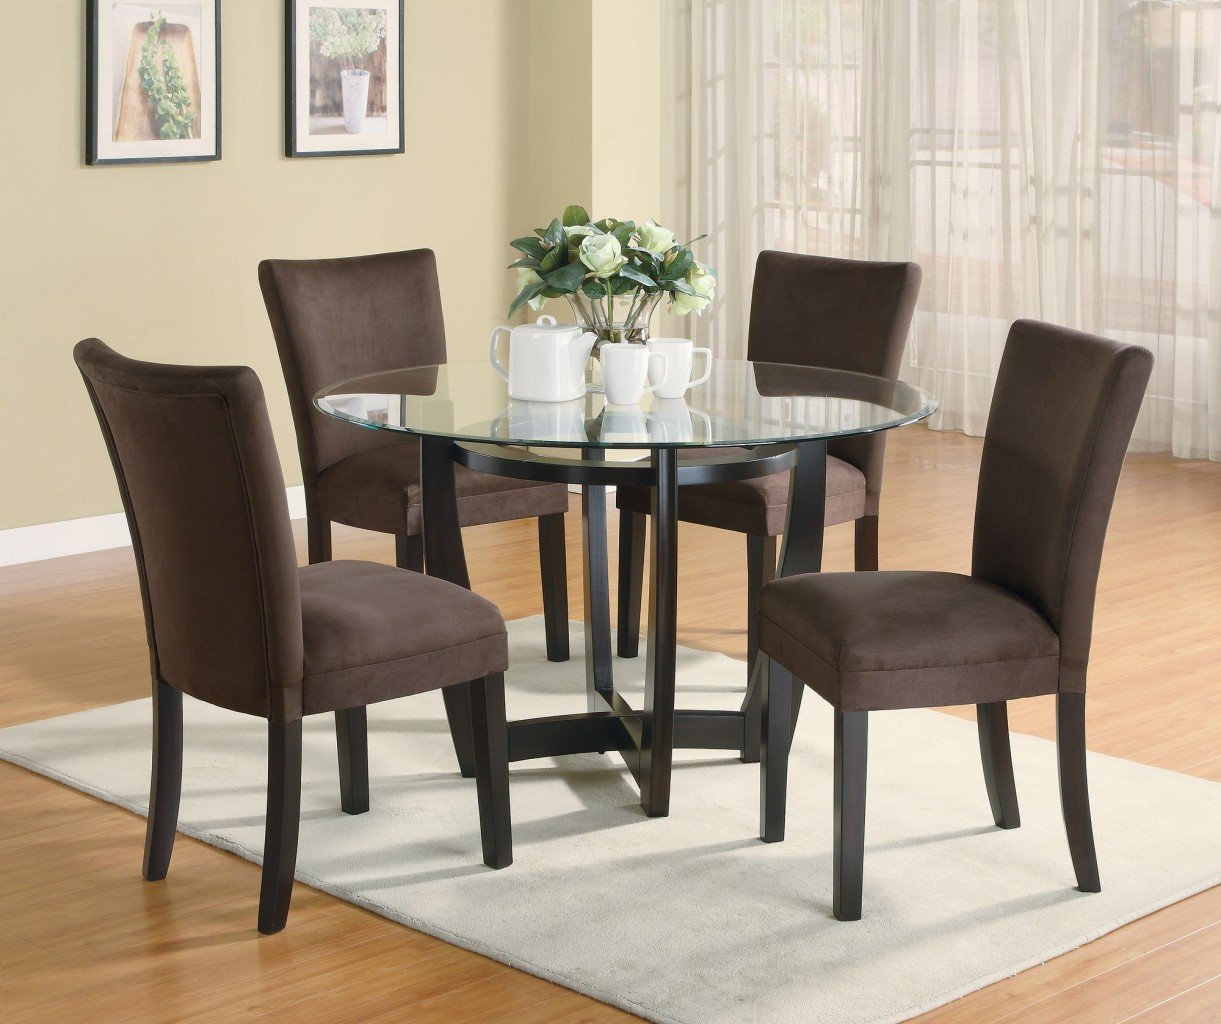 Cheap dining room table sets home furniture design for Images of dining room tables